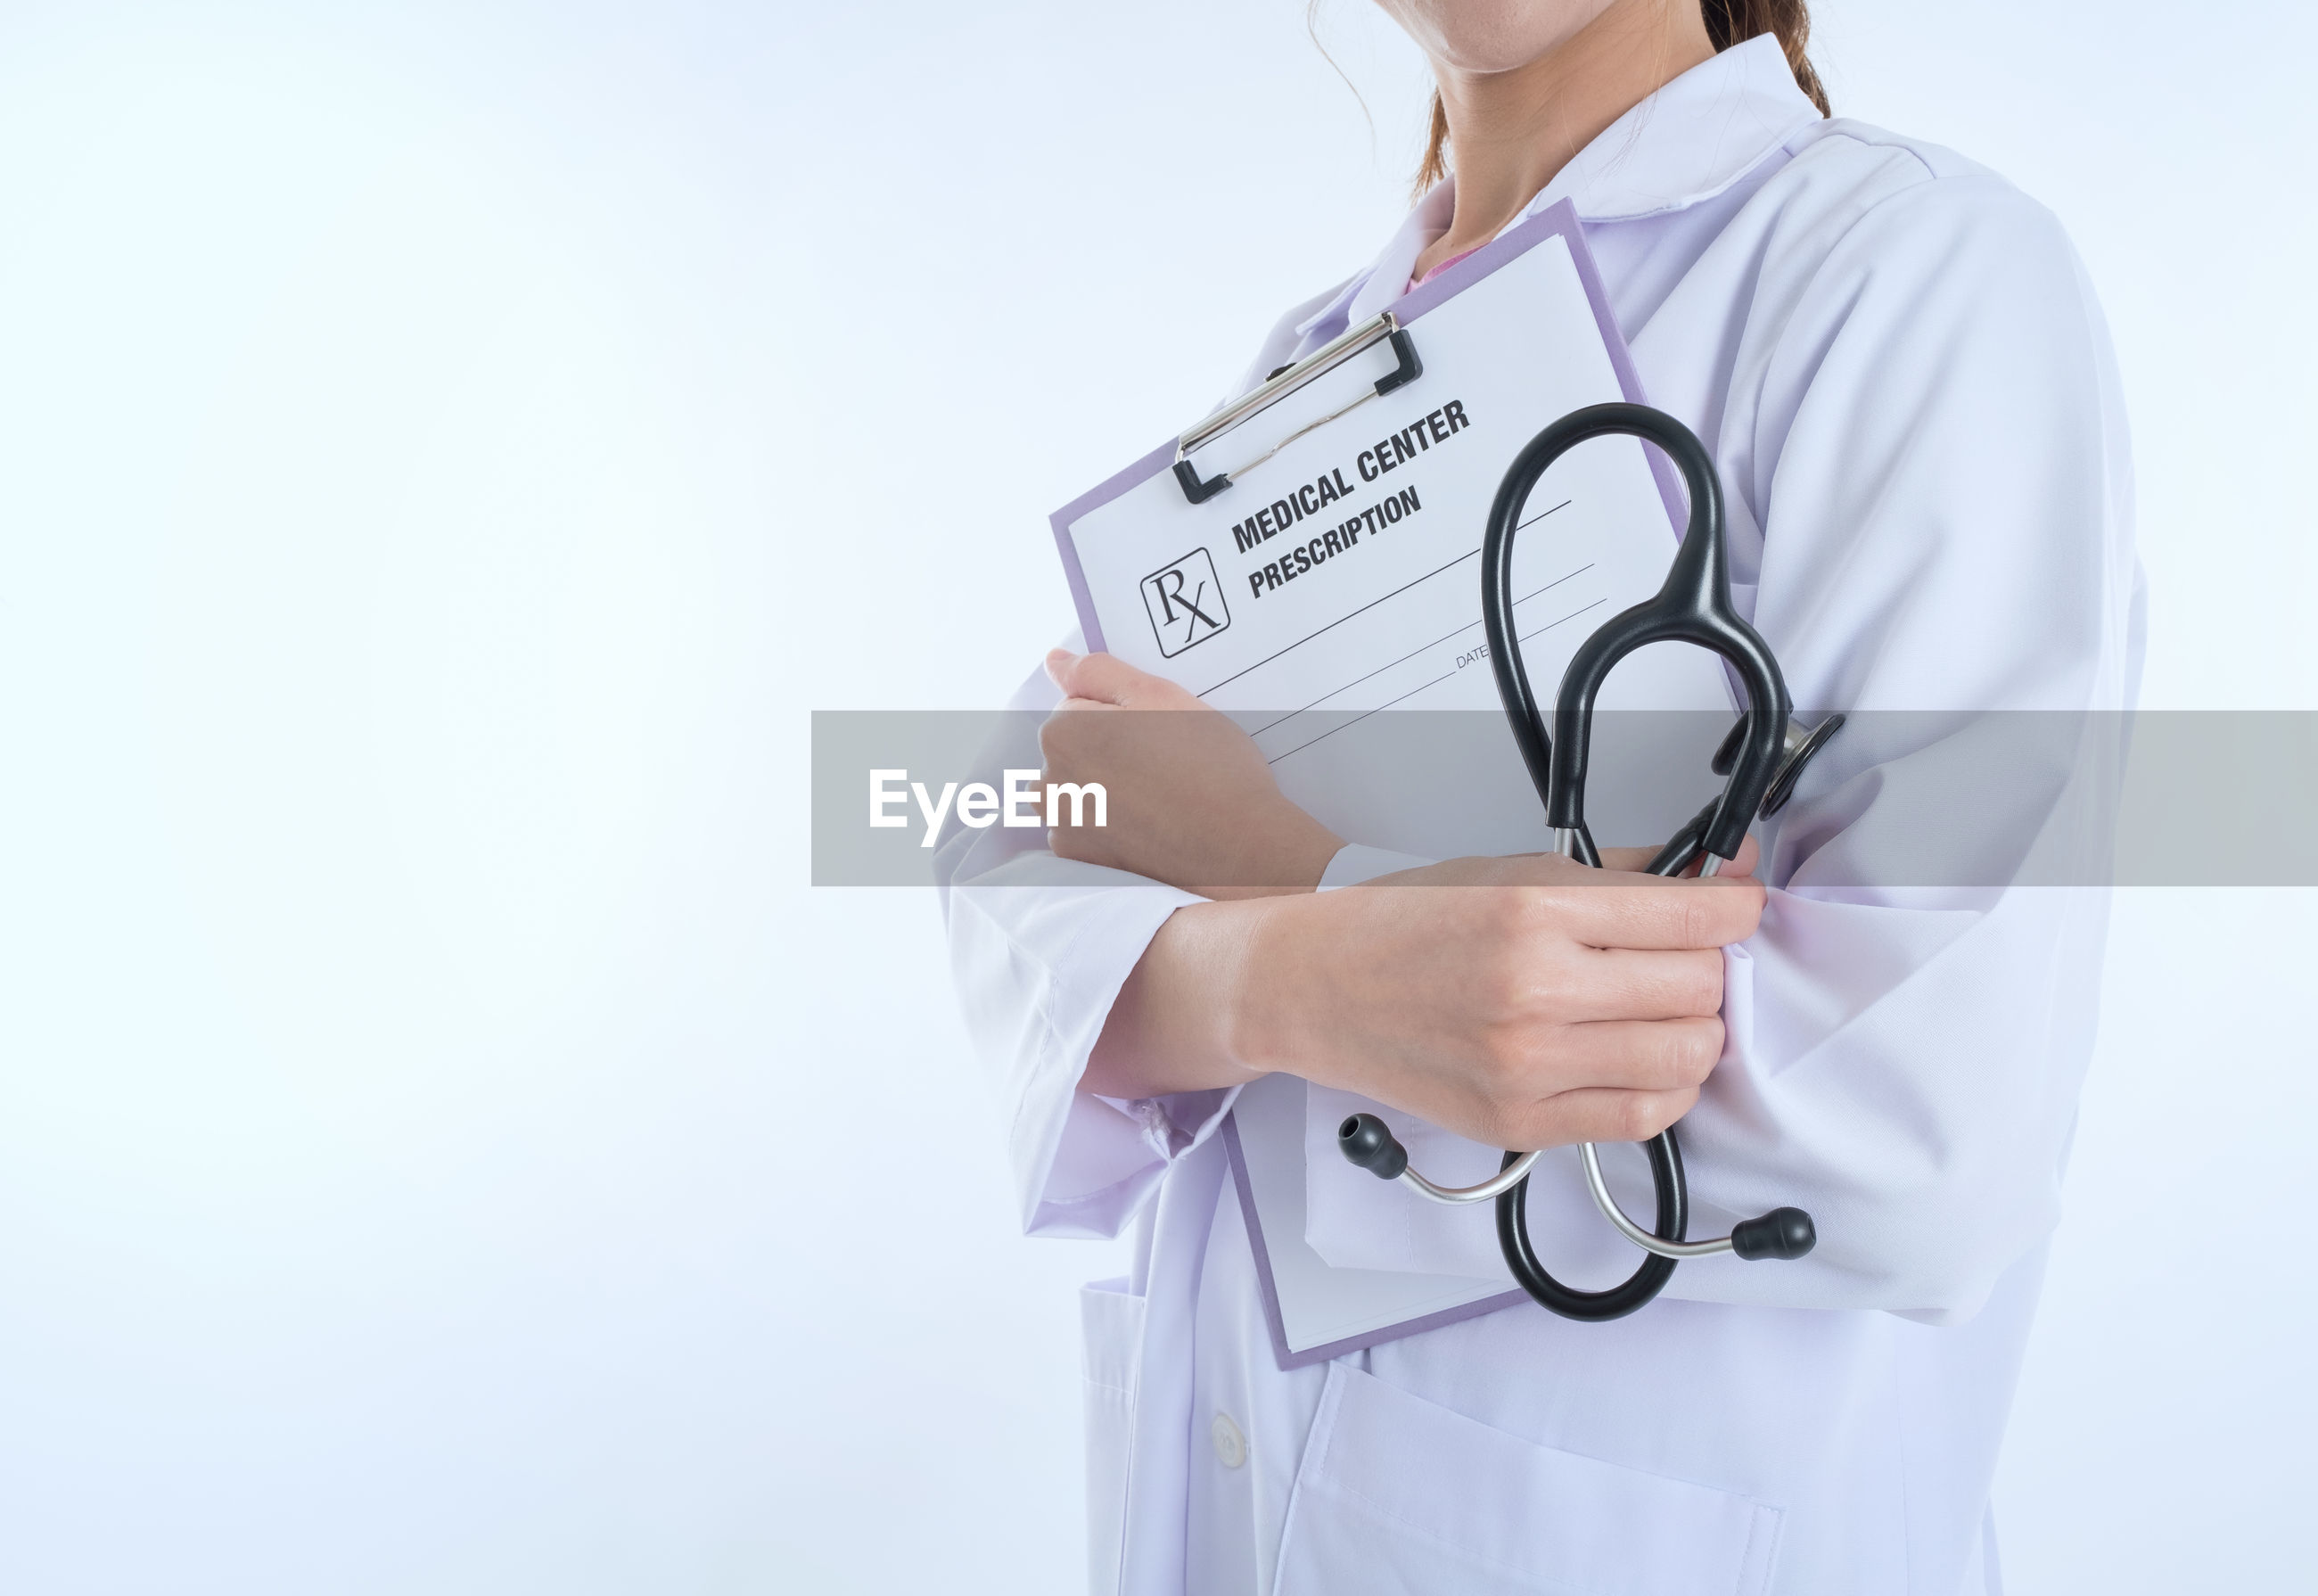 Midsection of female doctor with clipboard and stethoscope standing against white background